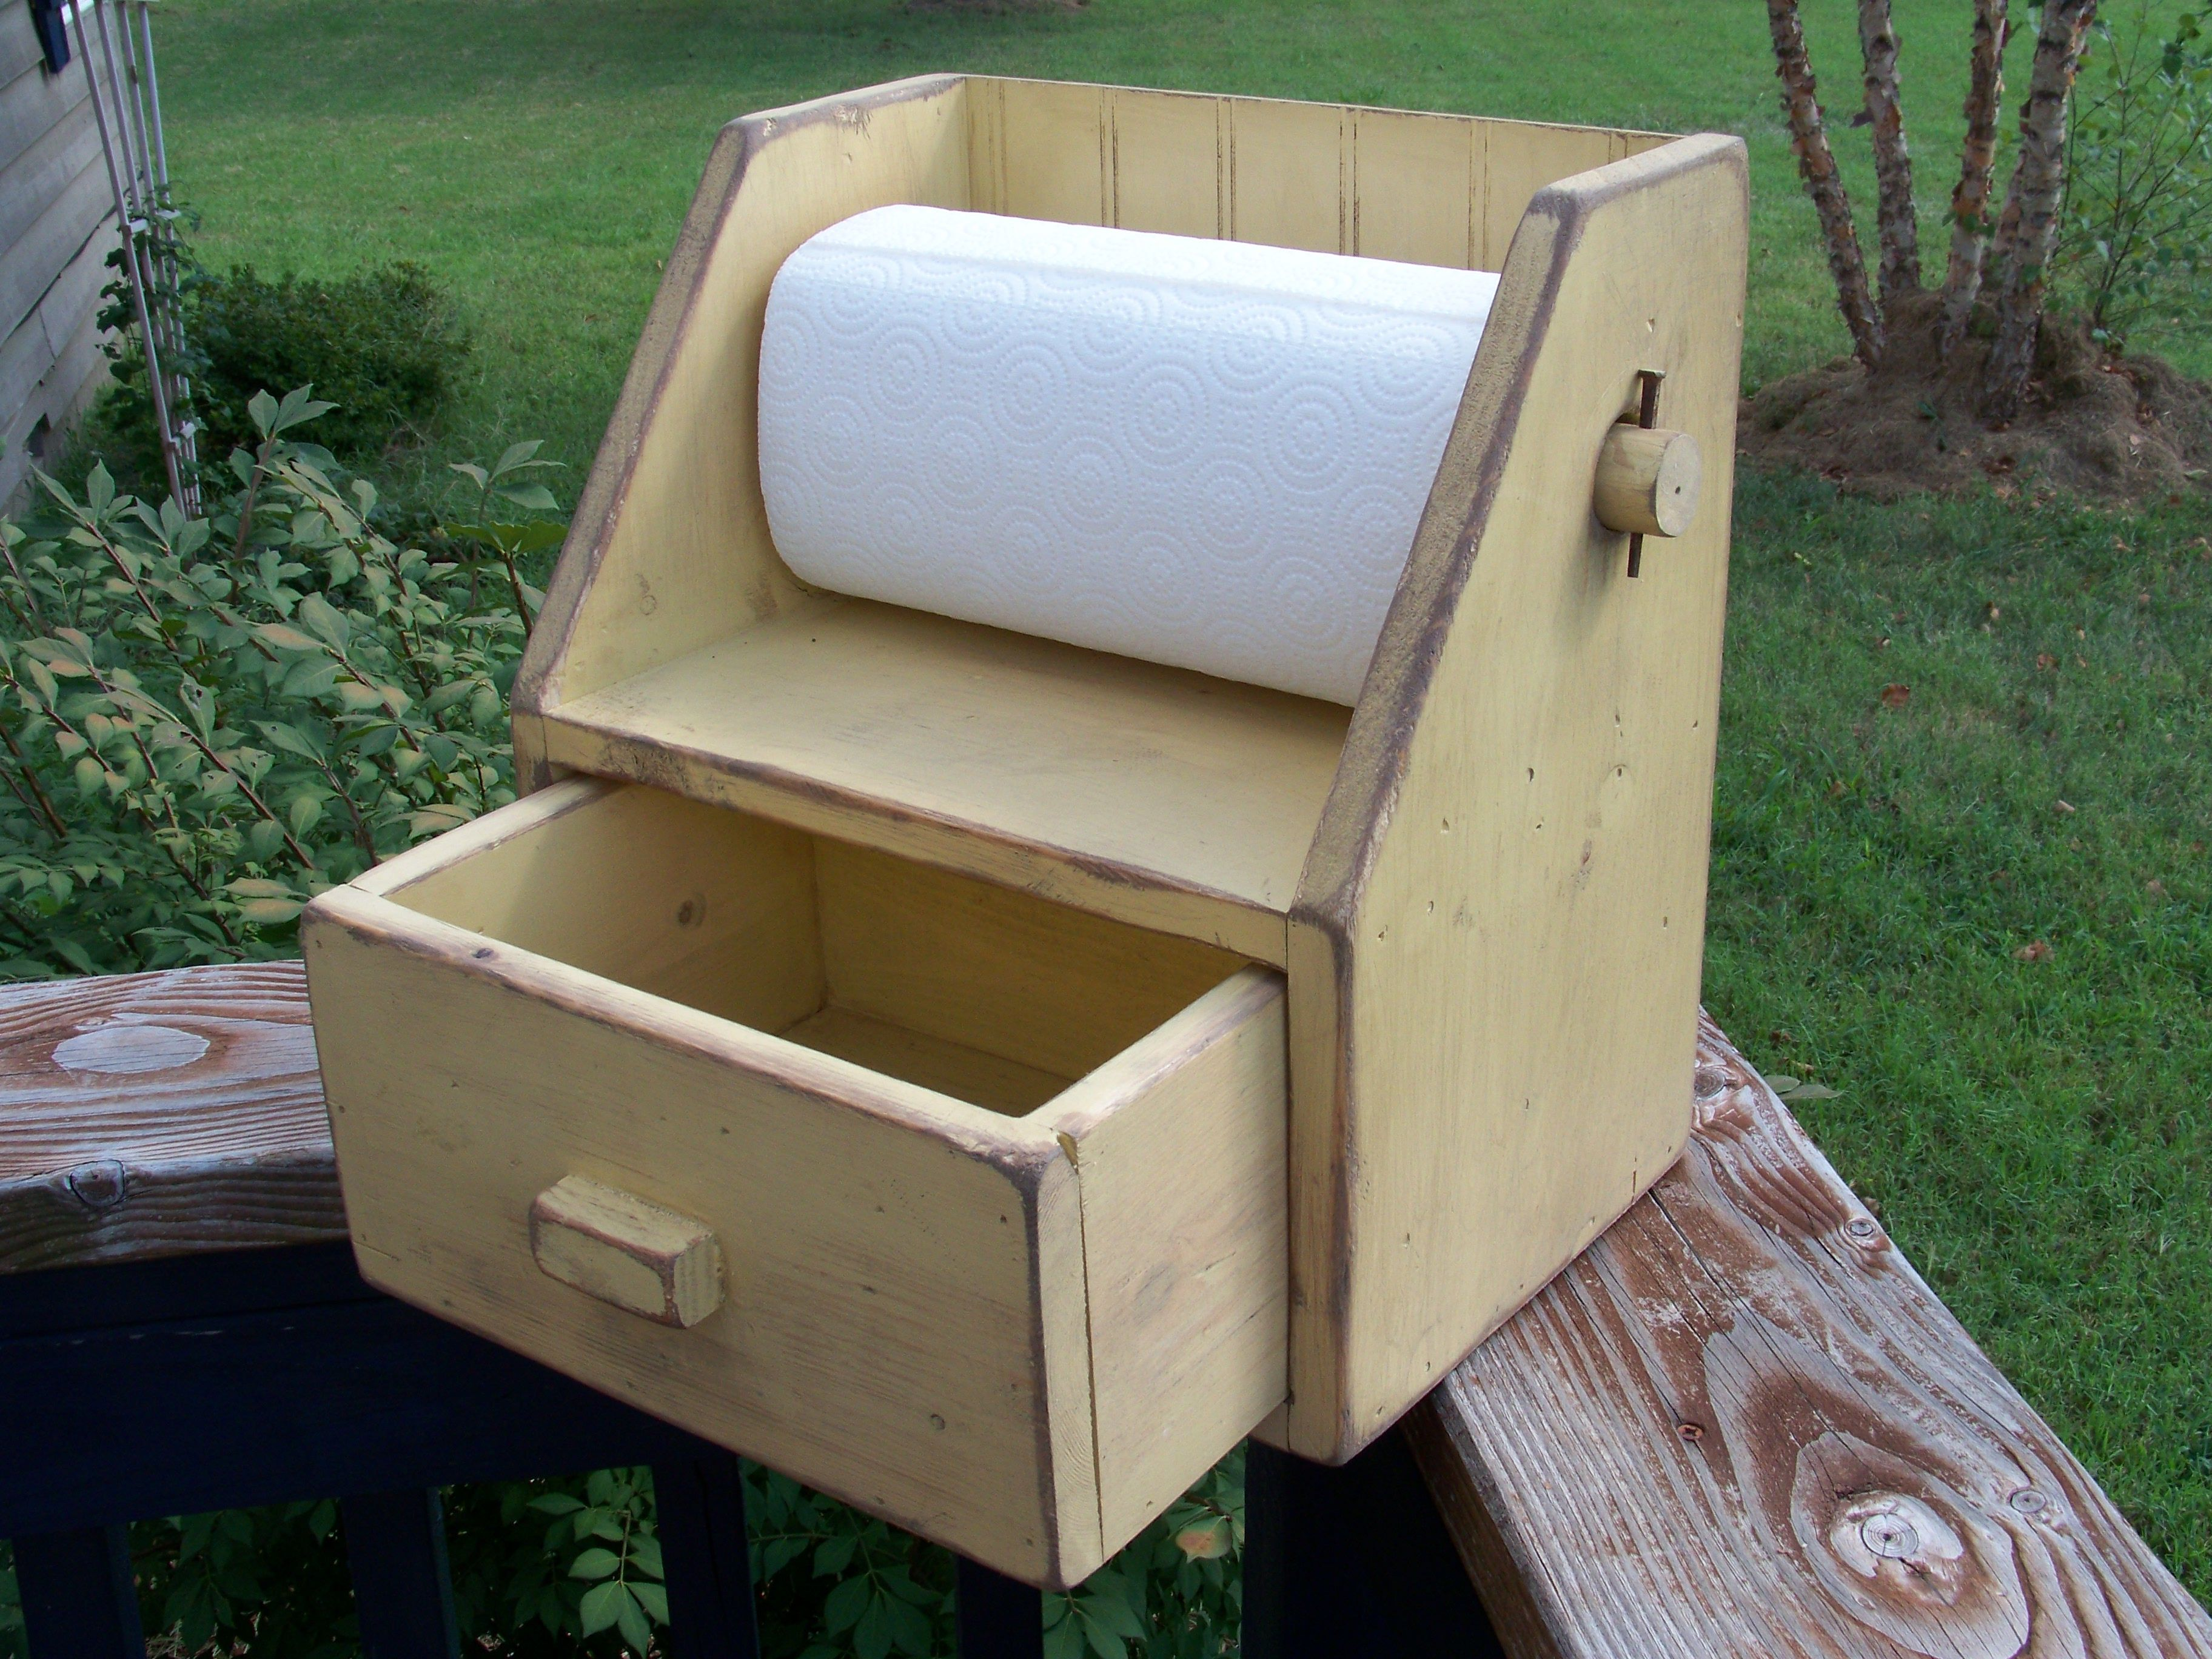 Primitive counter top paper towel holder  $24.00 plus shipping   American Primitive Furnishings